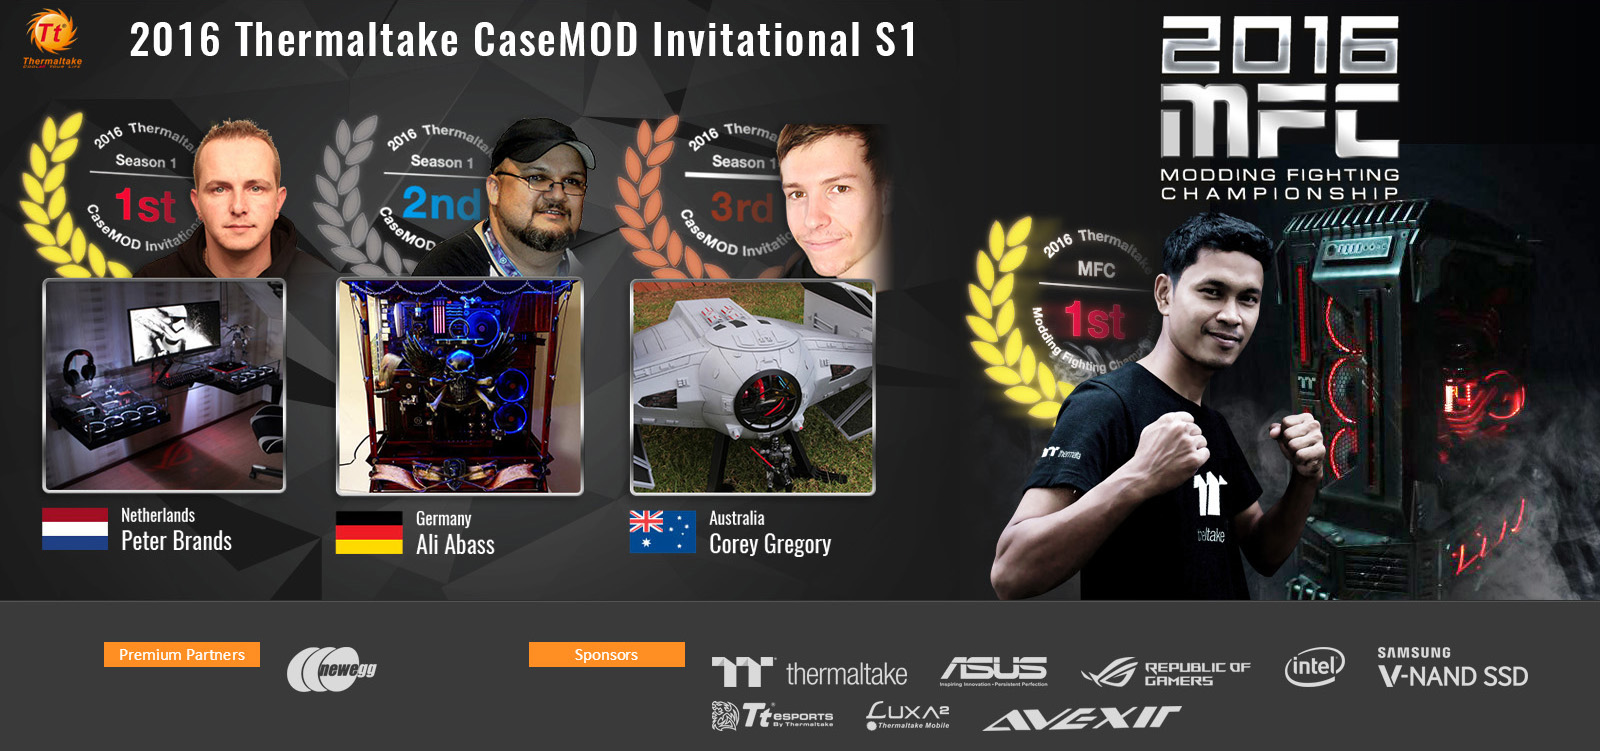 Thermaltake 2016 Modding Fighting Championship & 2016 Thermaltake CaseMOD Invitational Season 1  Congratulations to Winners